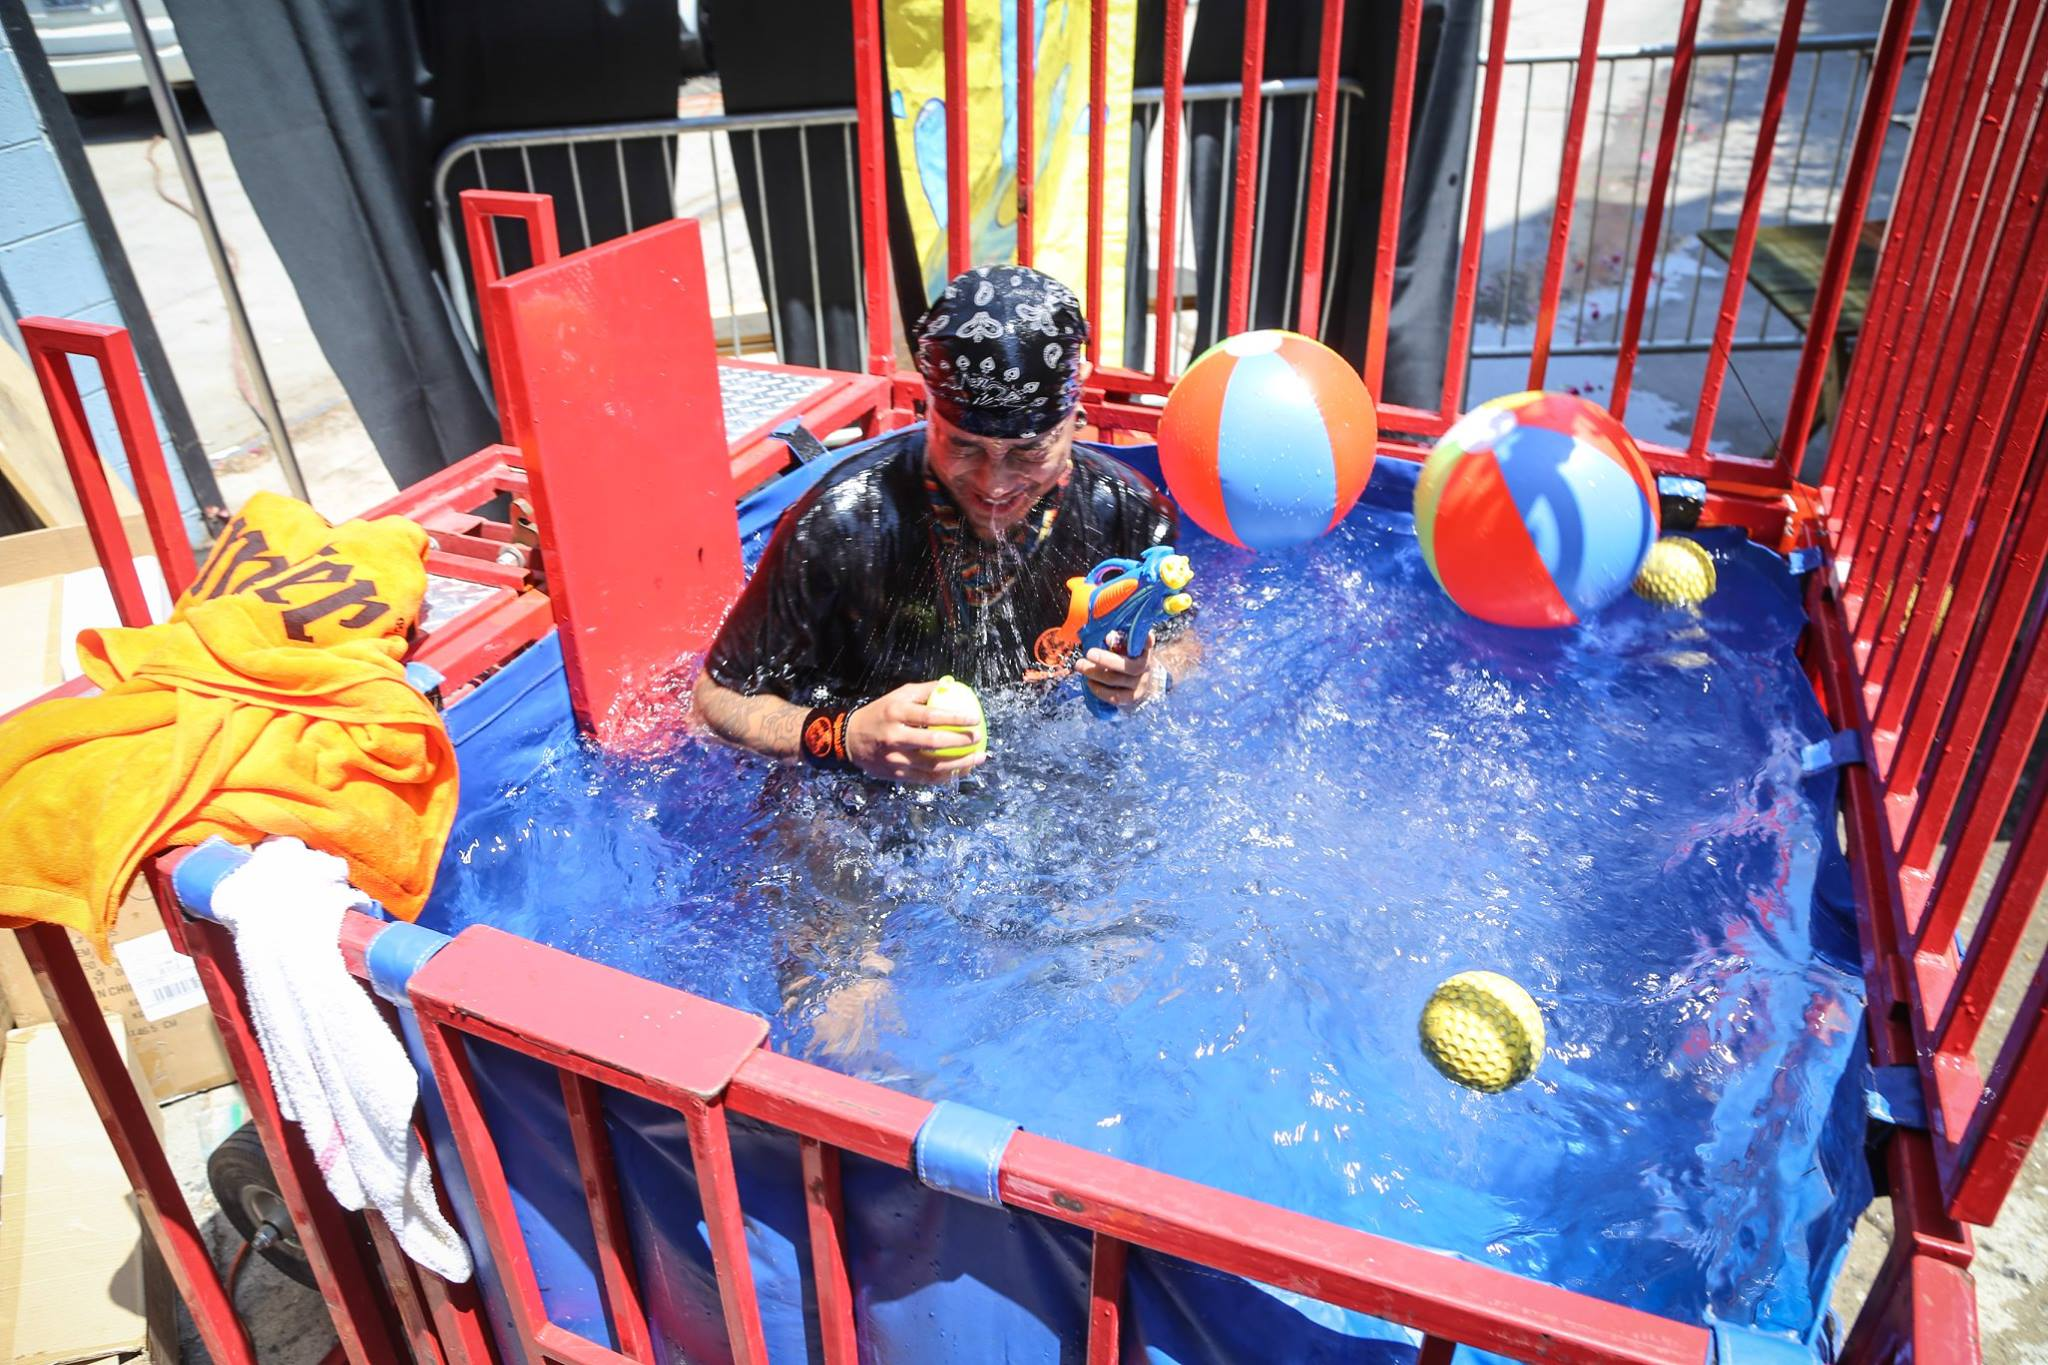 Co-sponsored by Jägermeister and Ilegal, the dunk tank was a big hit | Photo by Eugene Lee